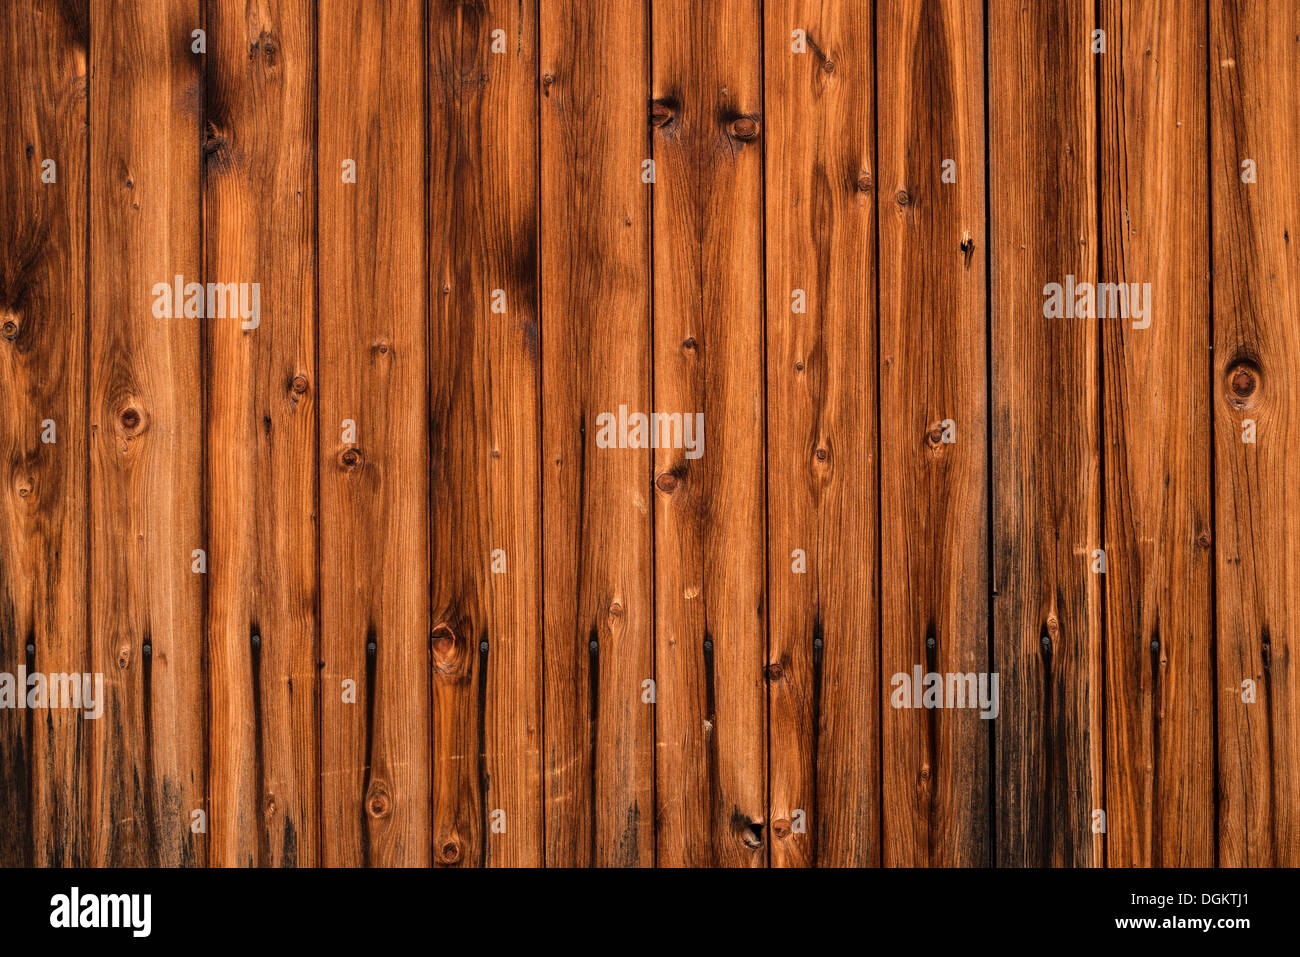 Wooden wall with weathering, background - Stock Image